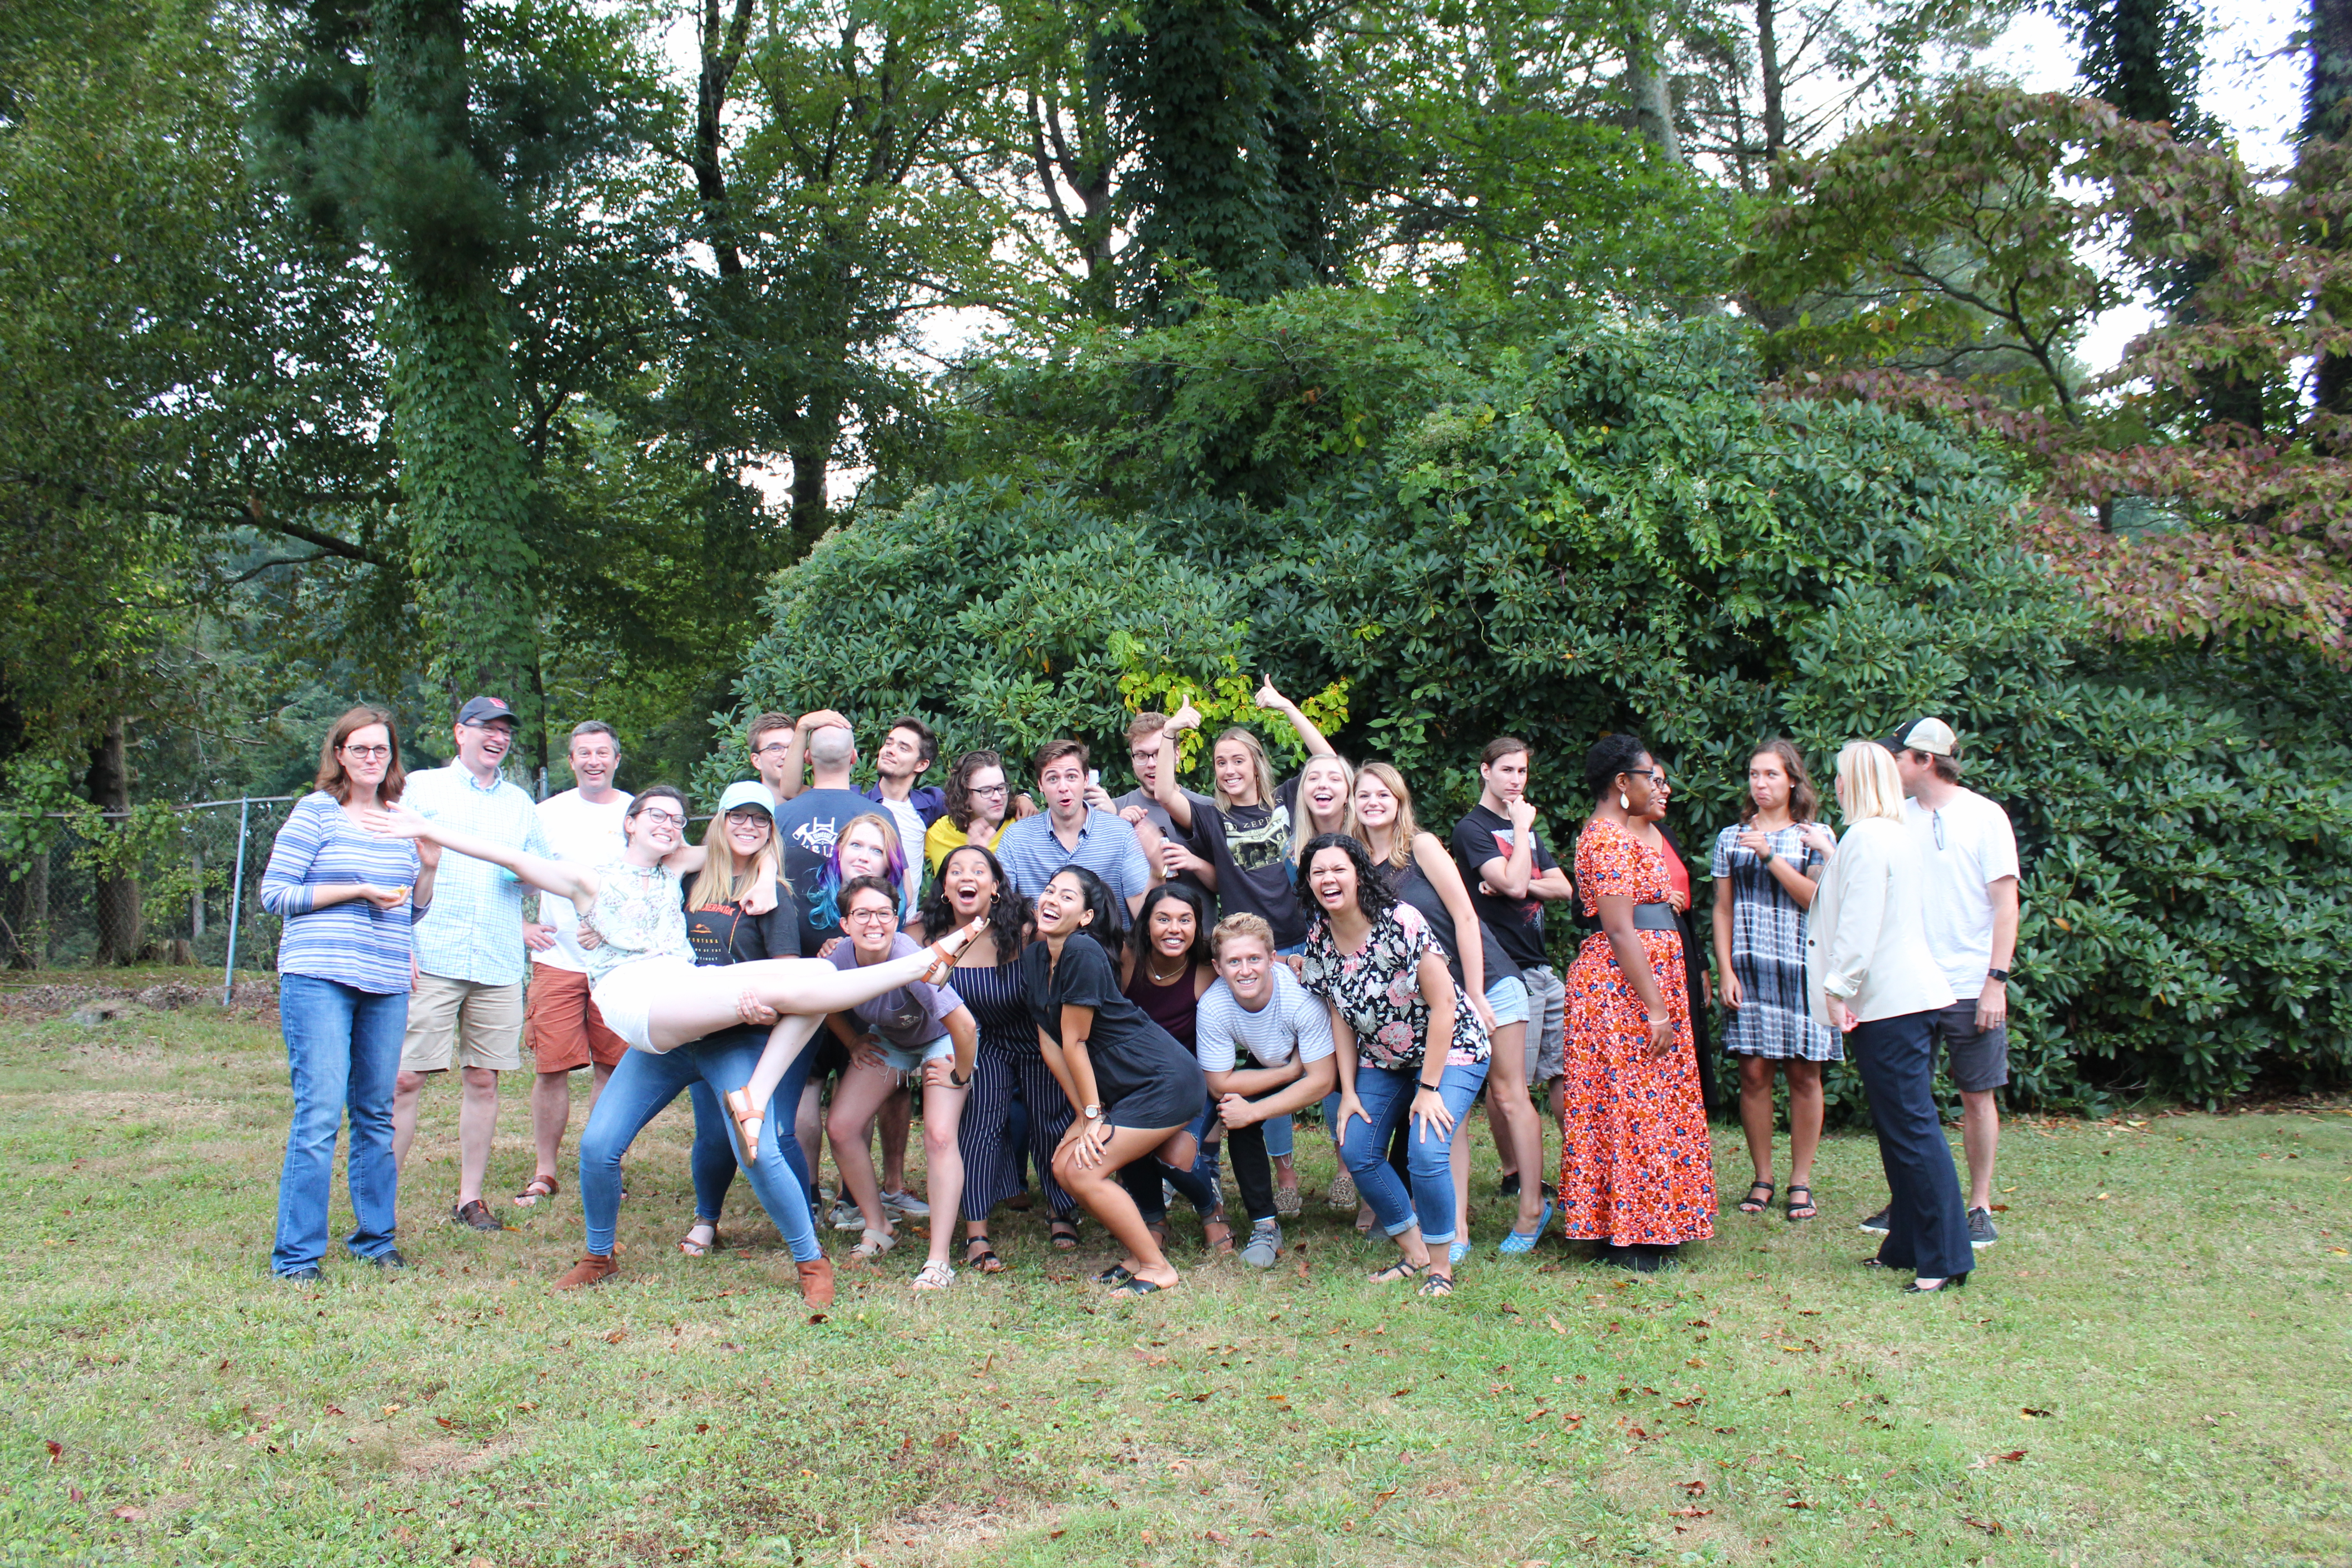 Funny Photo of Everyone at the IOHRM Cookout